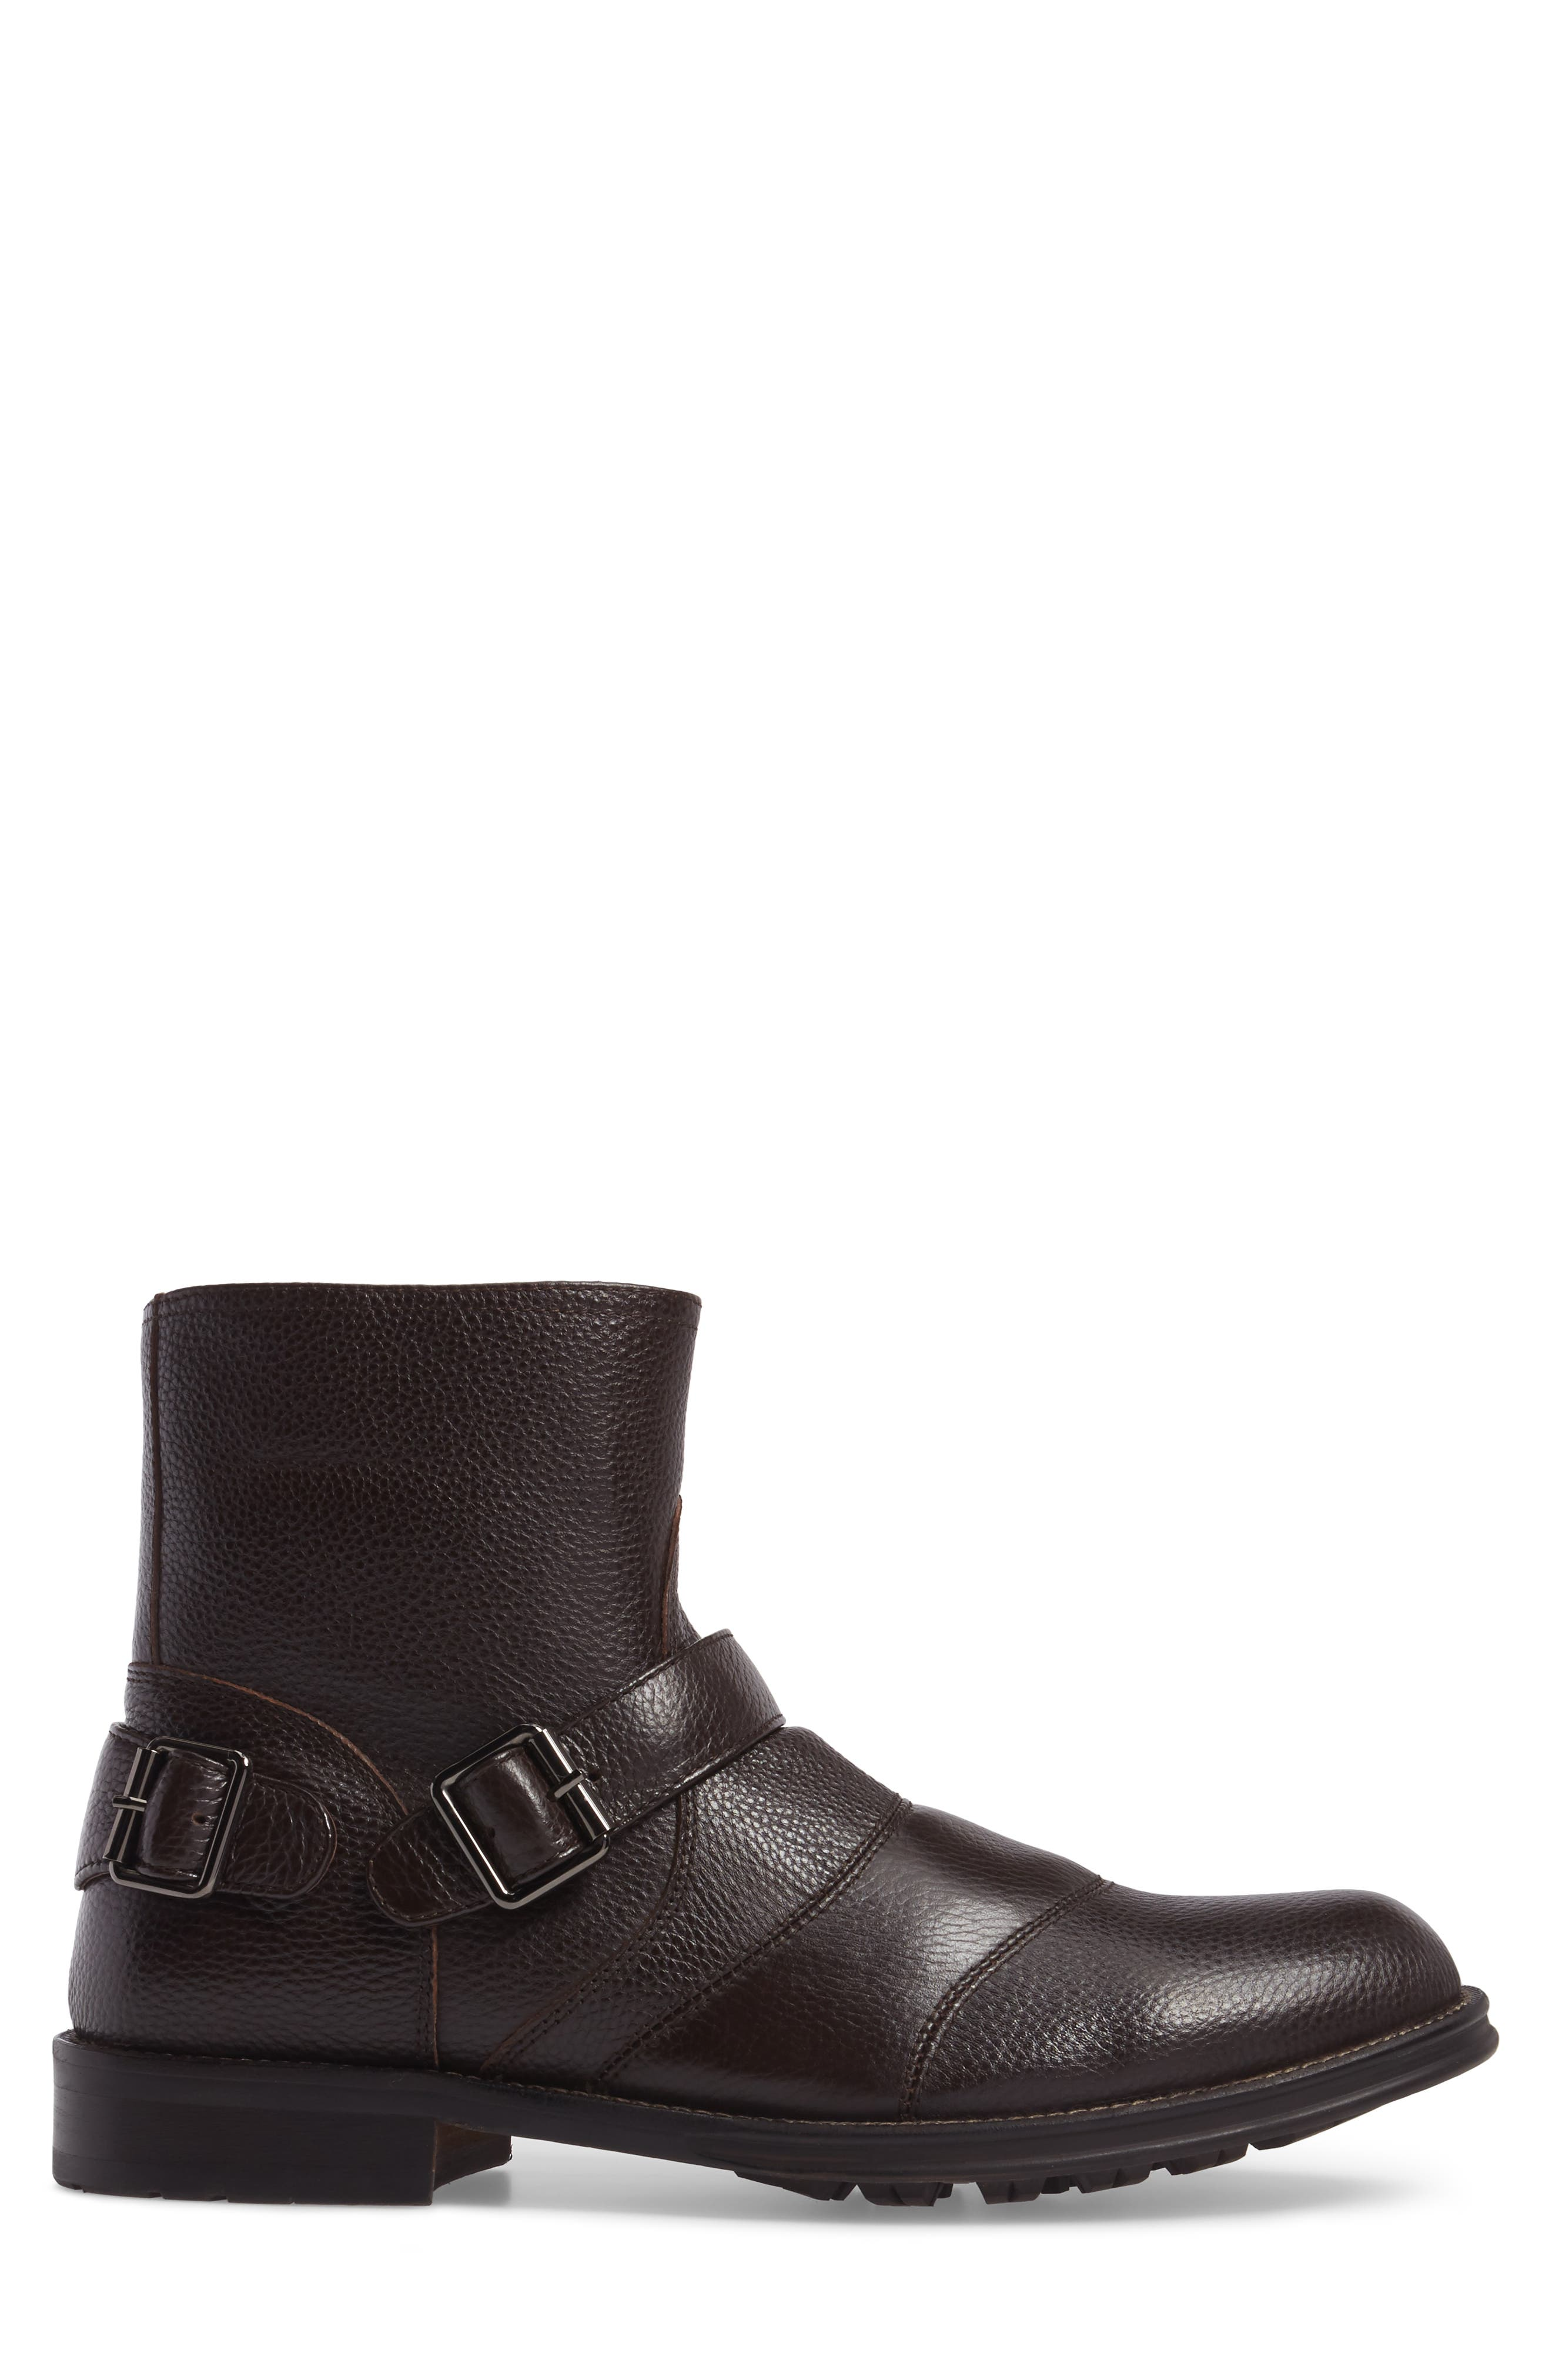 Howson Buckle Strap Boot,                             Alternate thumbnail 3, color,                             Brown Leather